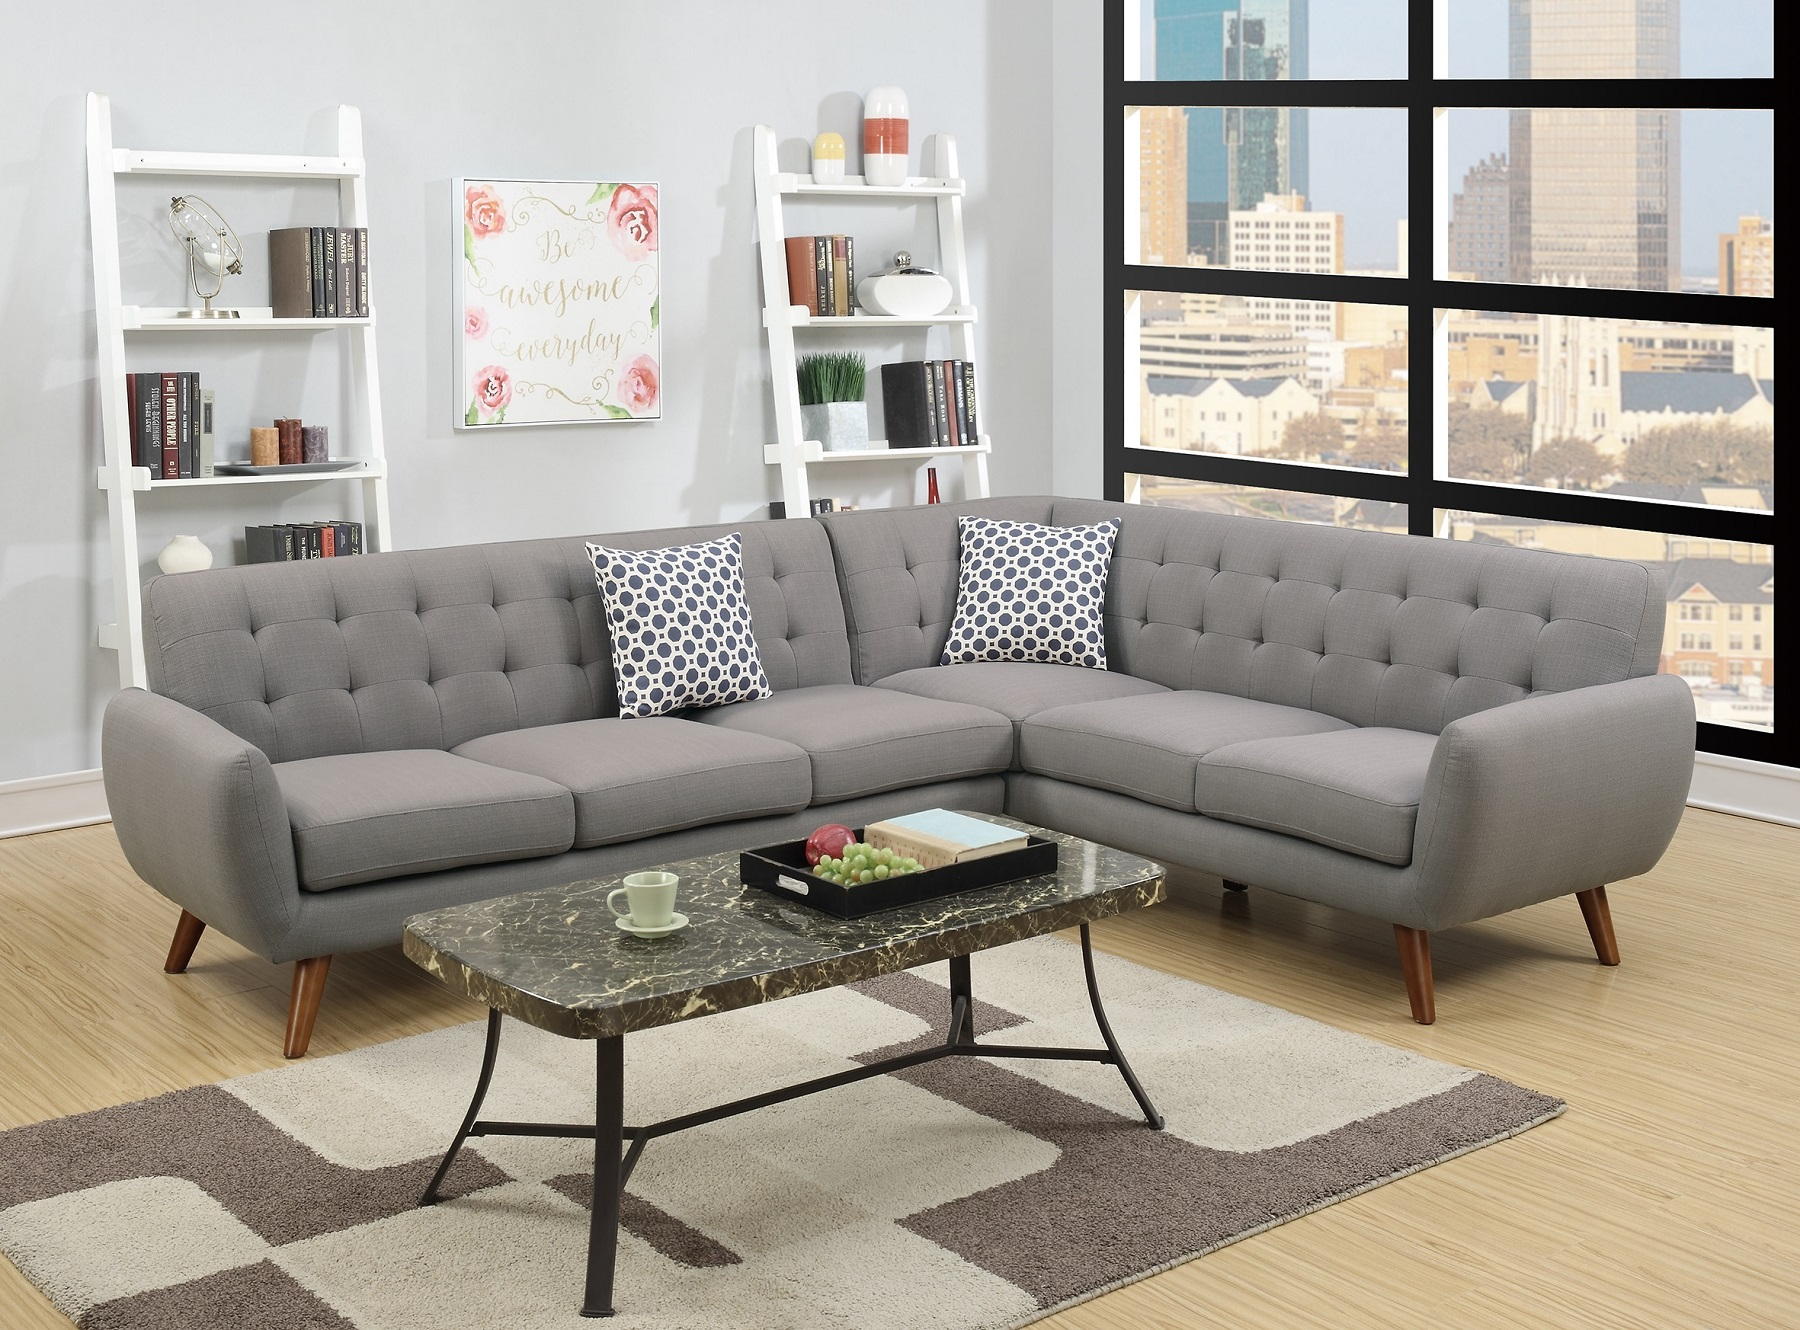 Admirable 2 Piece Sectional Sofa Living Room Grey Linen Like Fabric Sofa Loveseat Wedge Tufted Cushion Couch Pabps2019 Chair Design Images Pabps2019Com